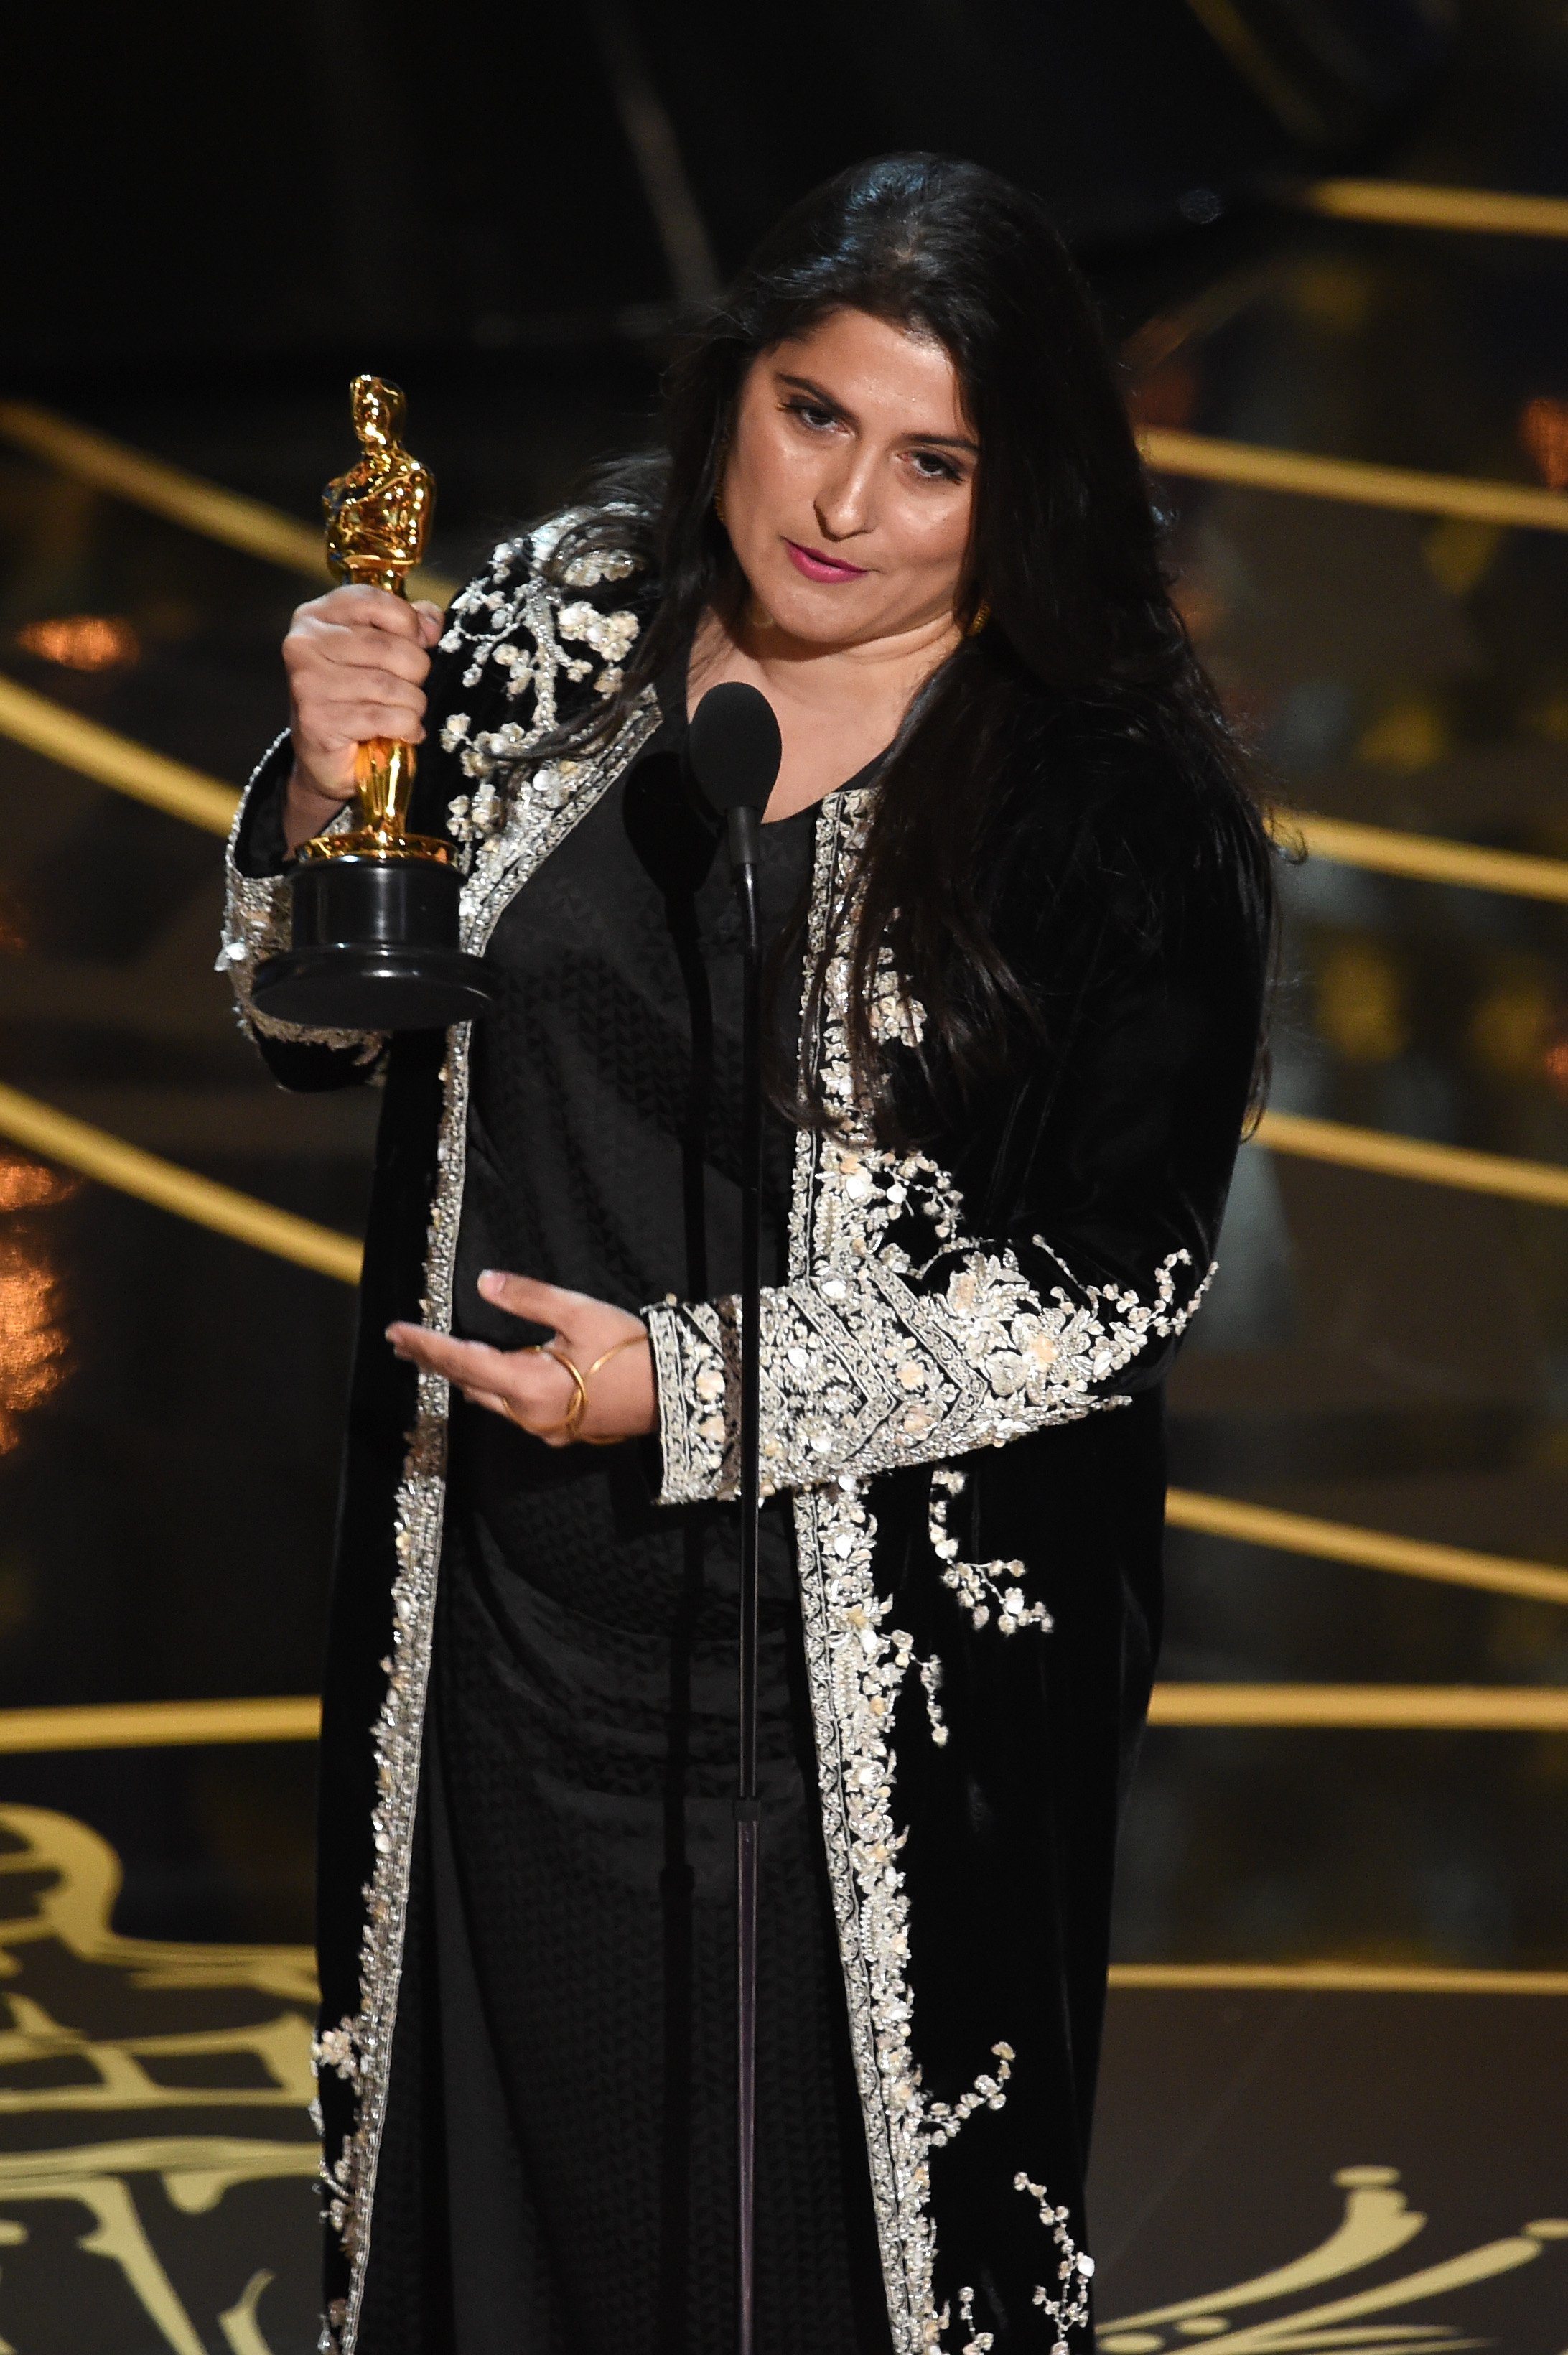 Pakistani-Canadian filmmaker Sharmeen Obaid-Chinoy, director of A Girl in the River: The Price of Forgiveness, accepts award for the best short documentary at the 88th Annual Academy Awards. (Photo courtesy of The Oscar)